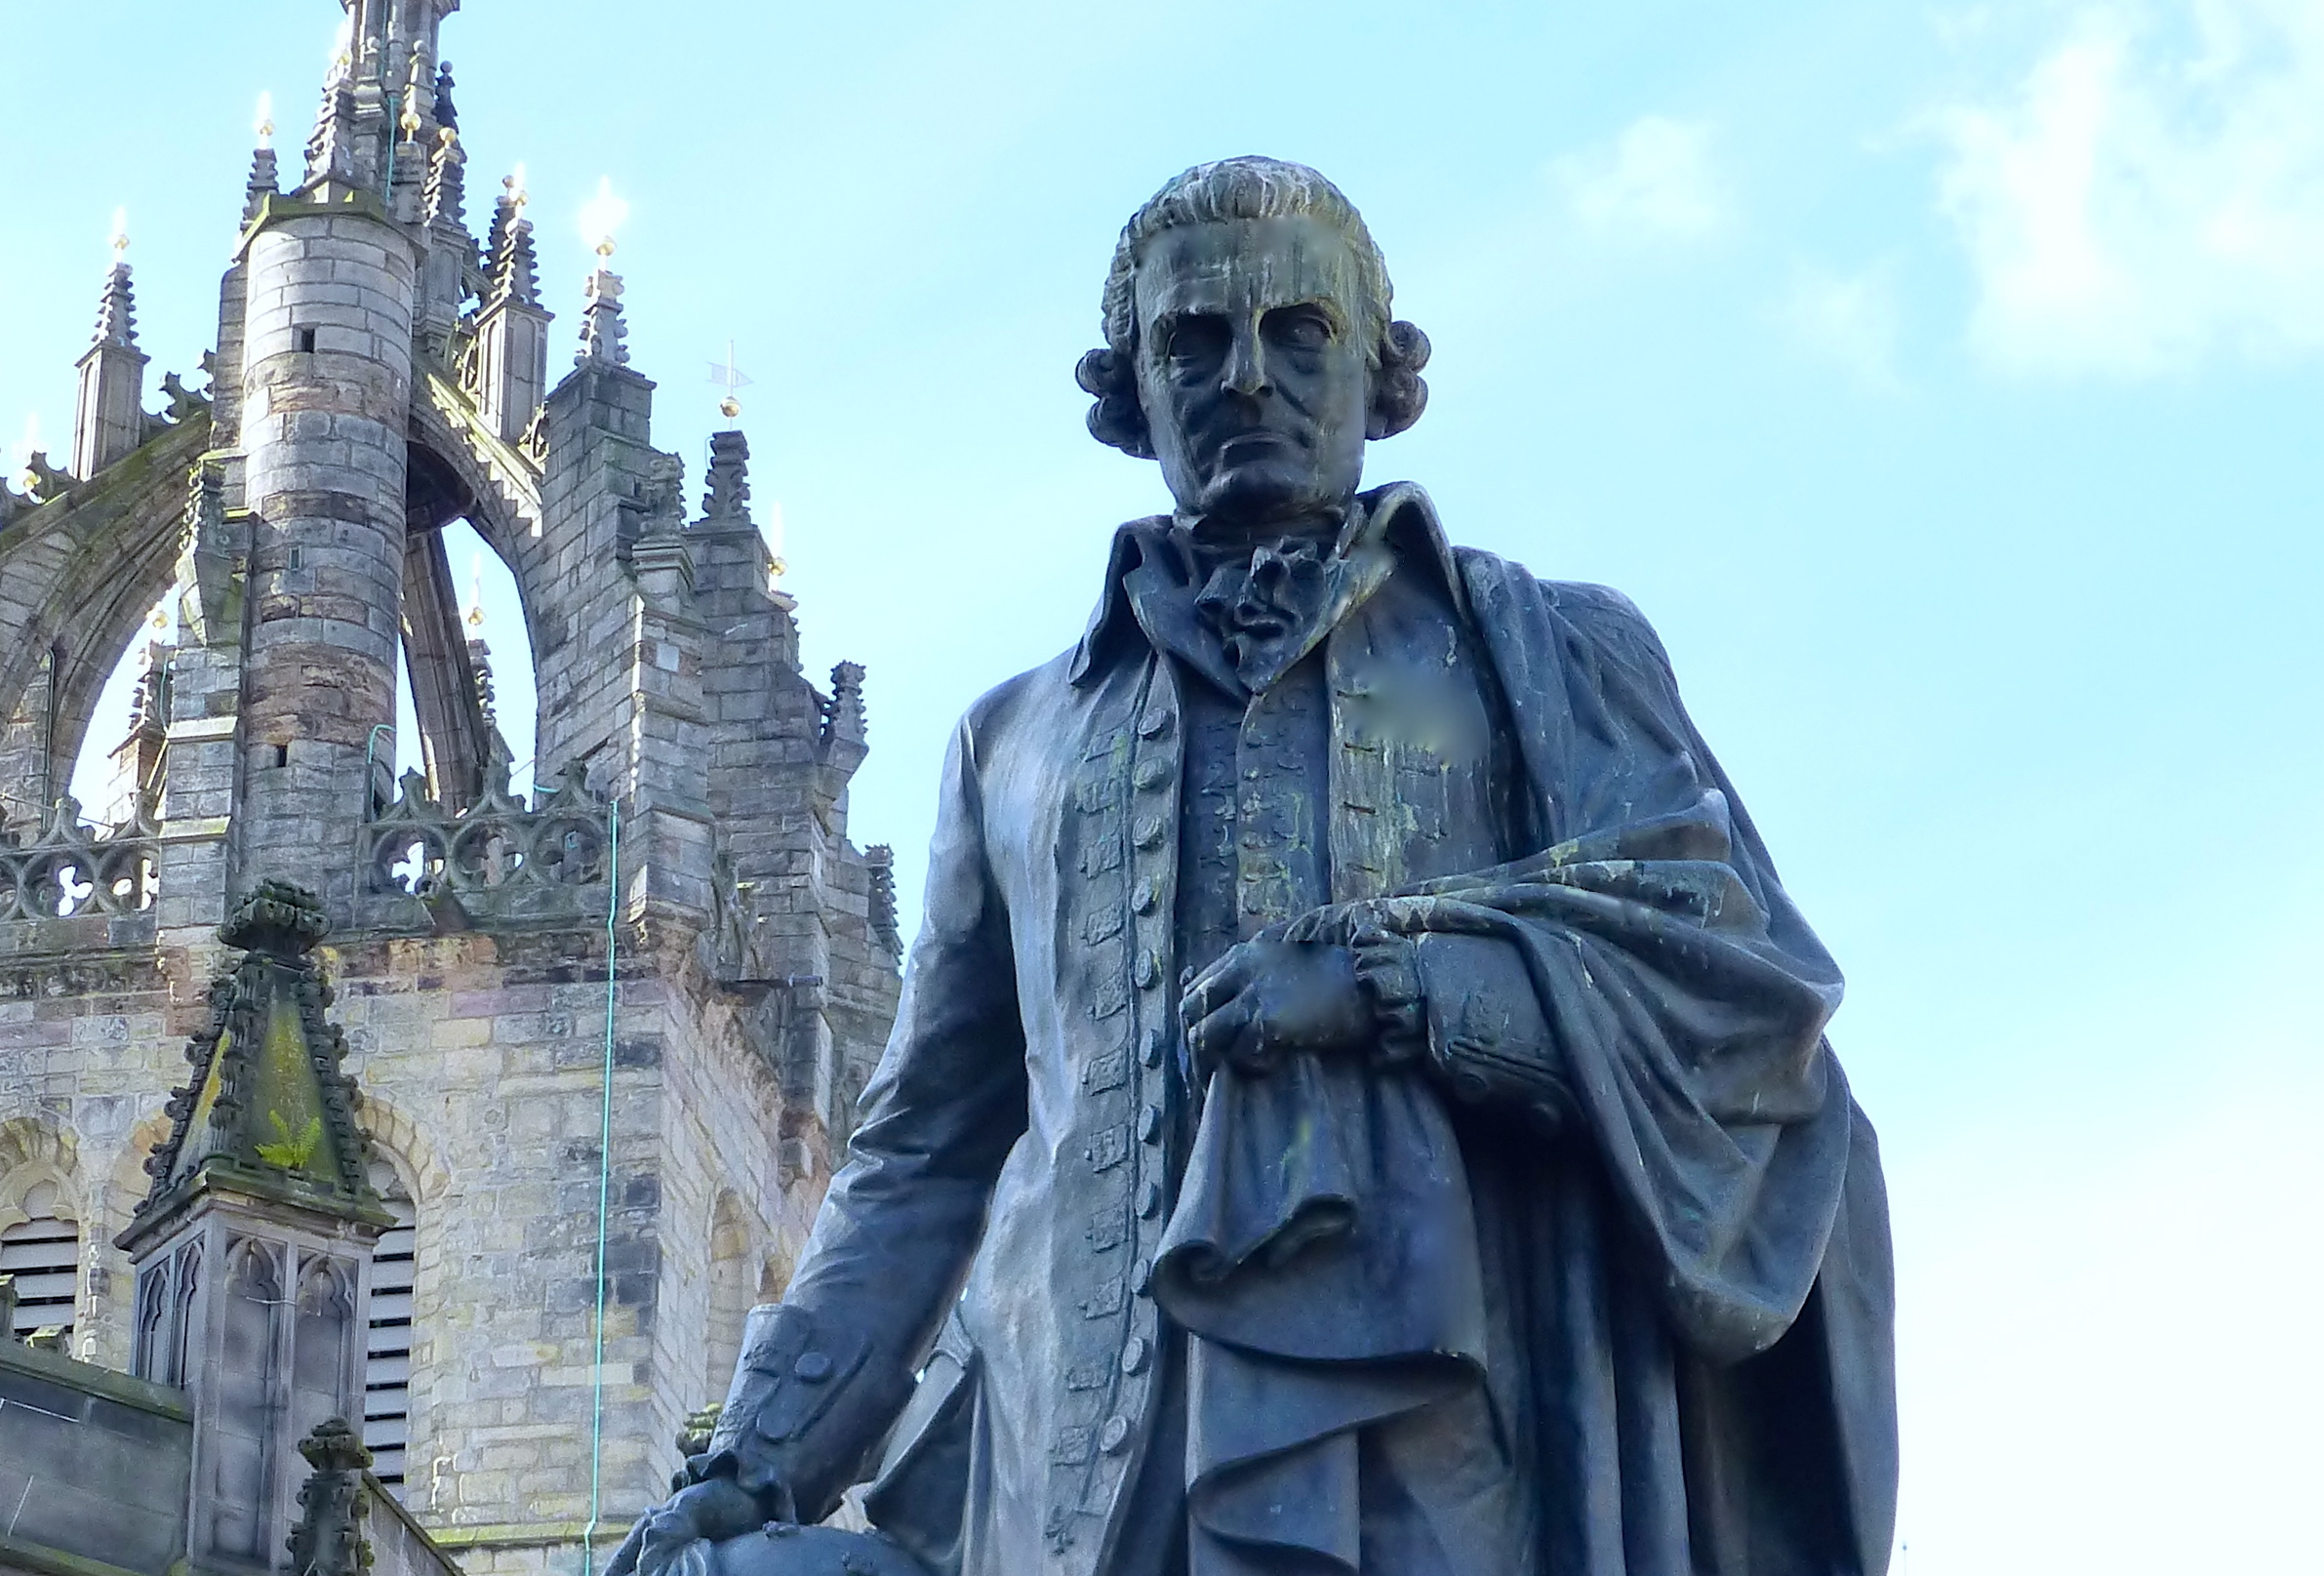 adam smith institute    the father of liberalism learn about adam smith read here